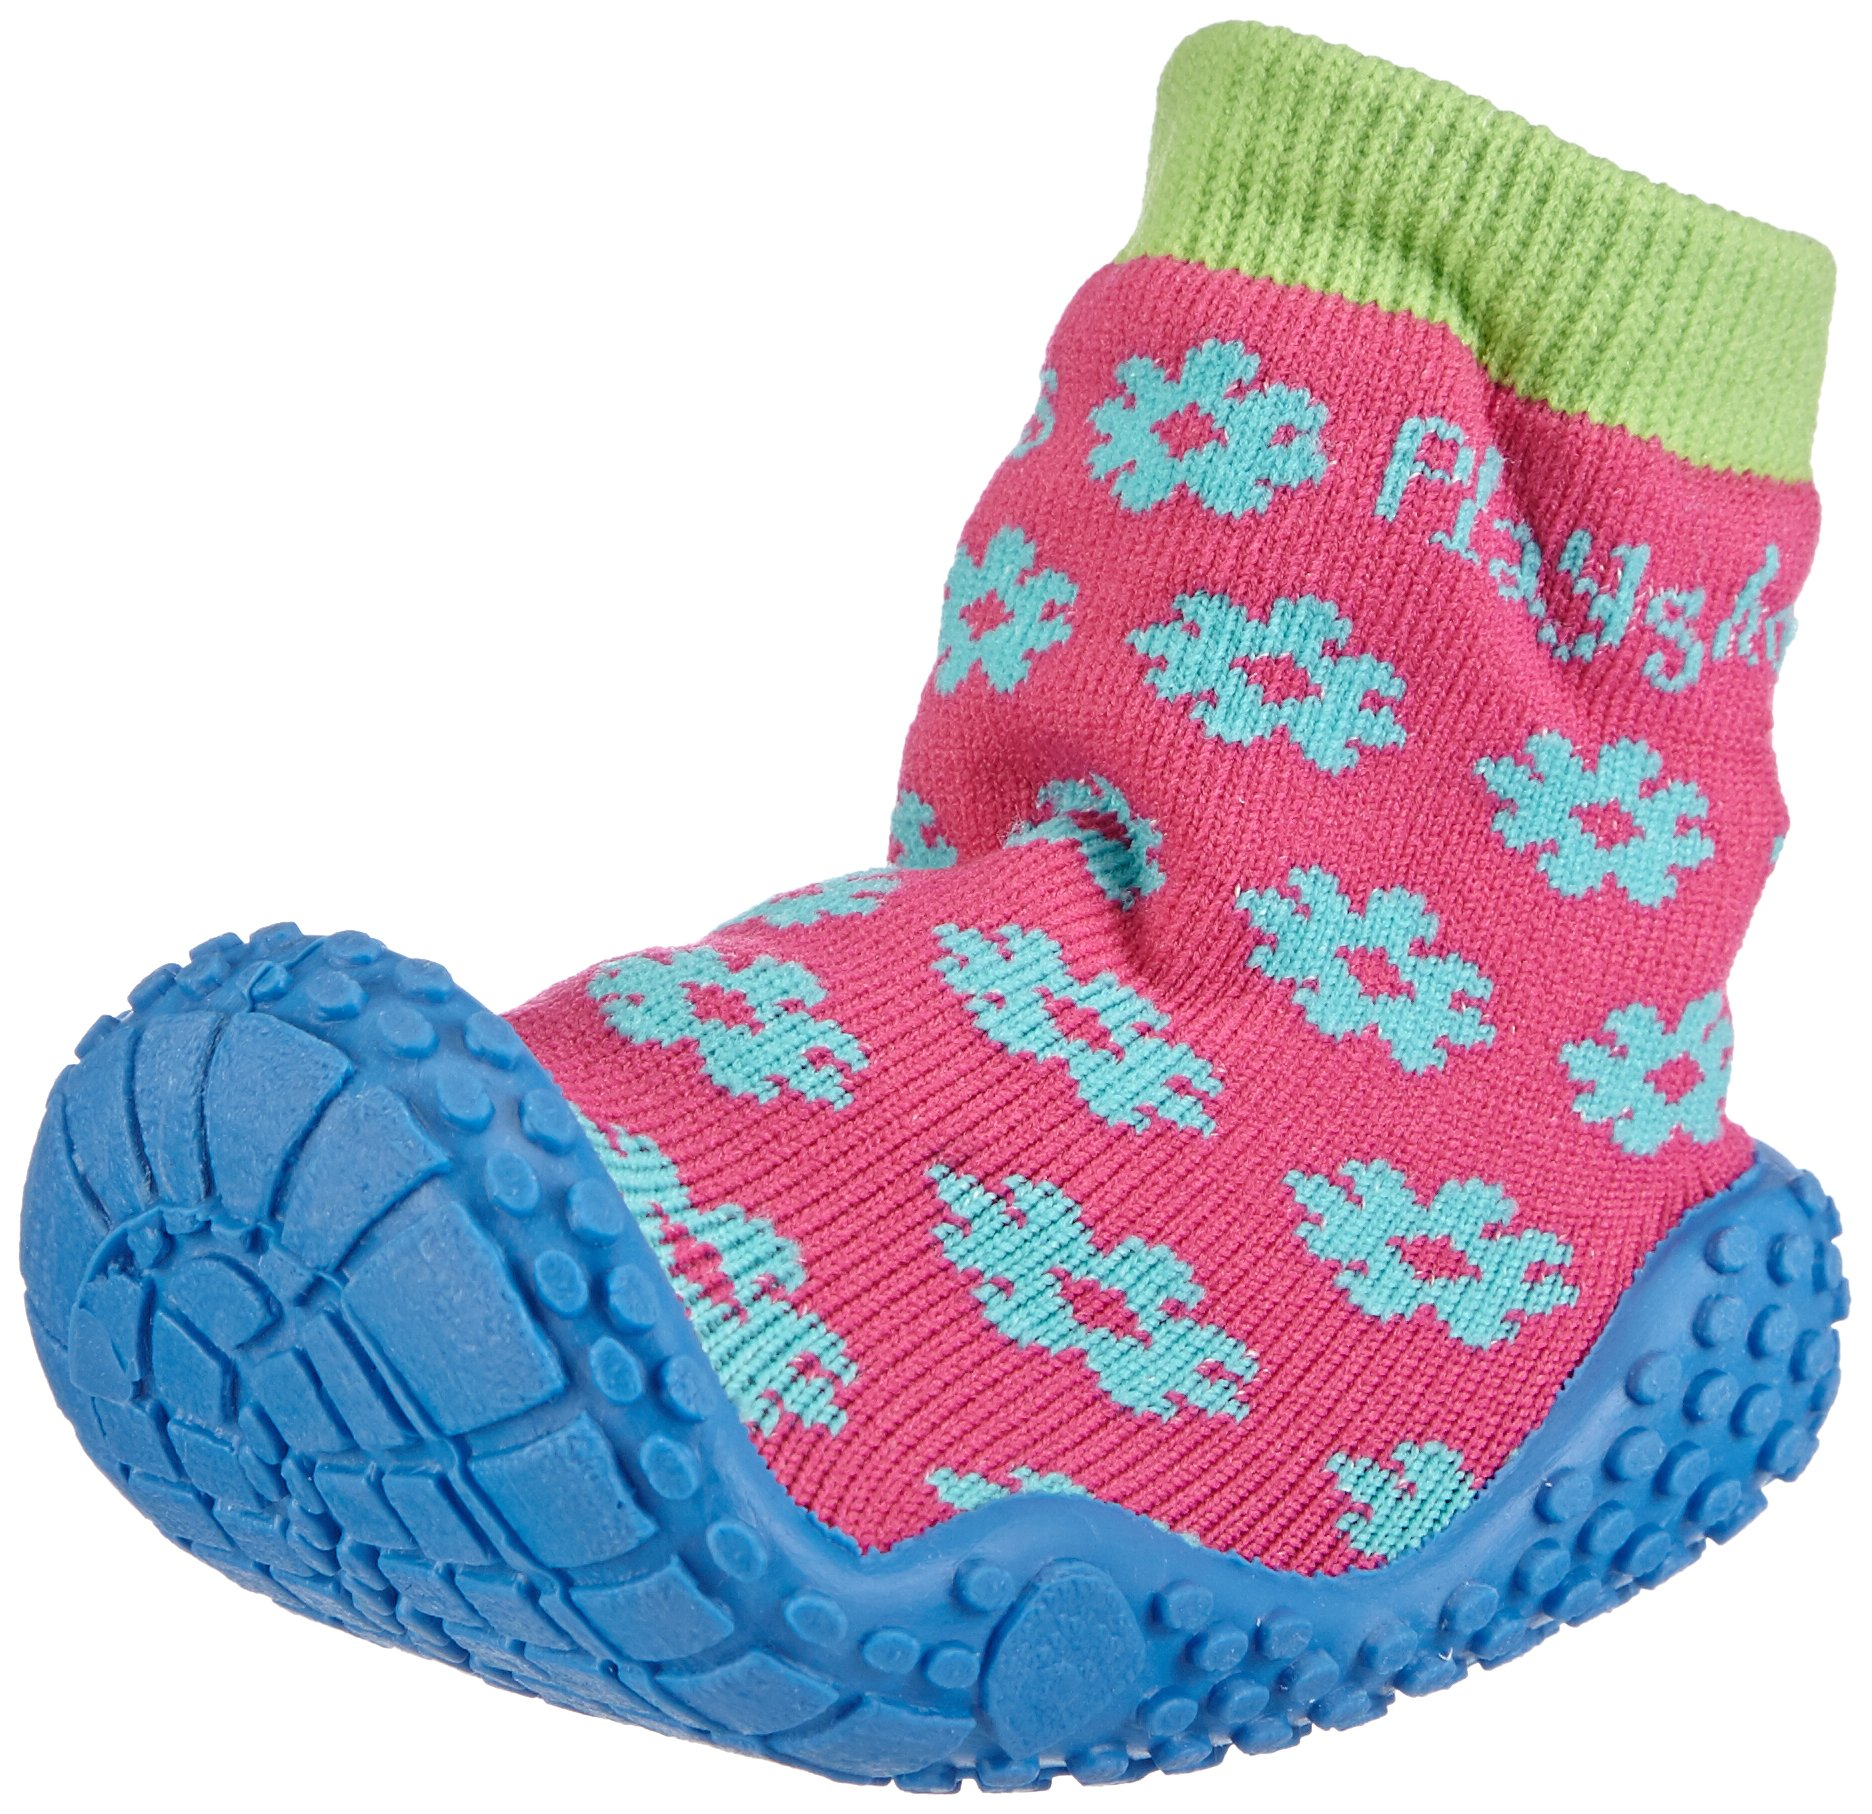 Playshoes Girls Flower Collection Rubber Aqua Swim/Beach Shoes (4.5 M US Toddler) by Playshoes (Image #1)